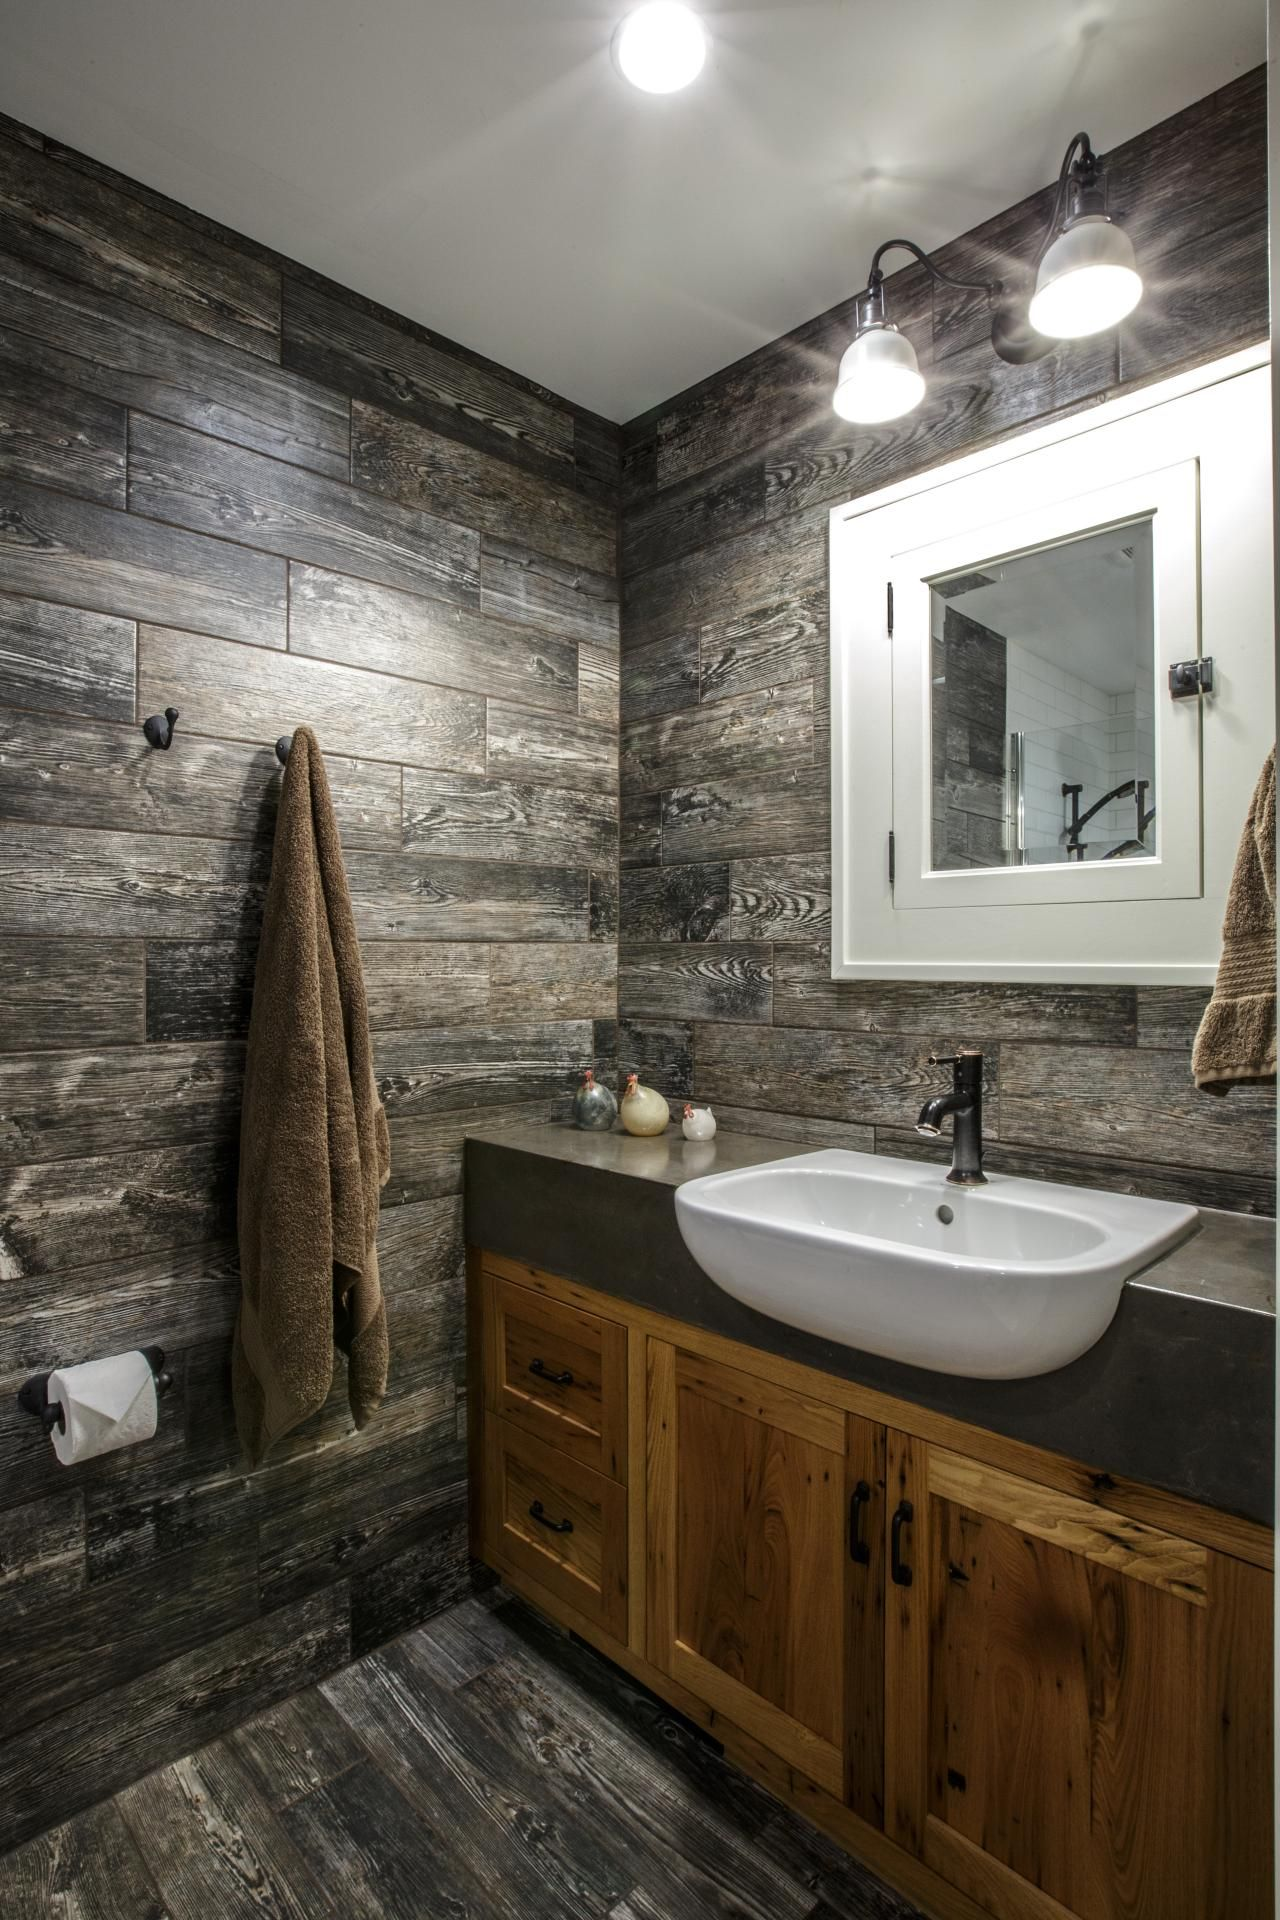 sophisticated charming contemporary pictures at ideas of designs best as photo bathroom bathrooms for design decor modern accessoriesrary home idea unbelievable with amazing stylish wells decorating small bathtub walls